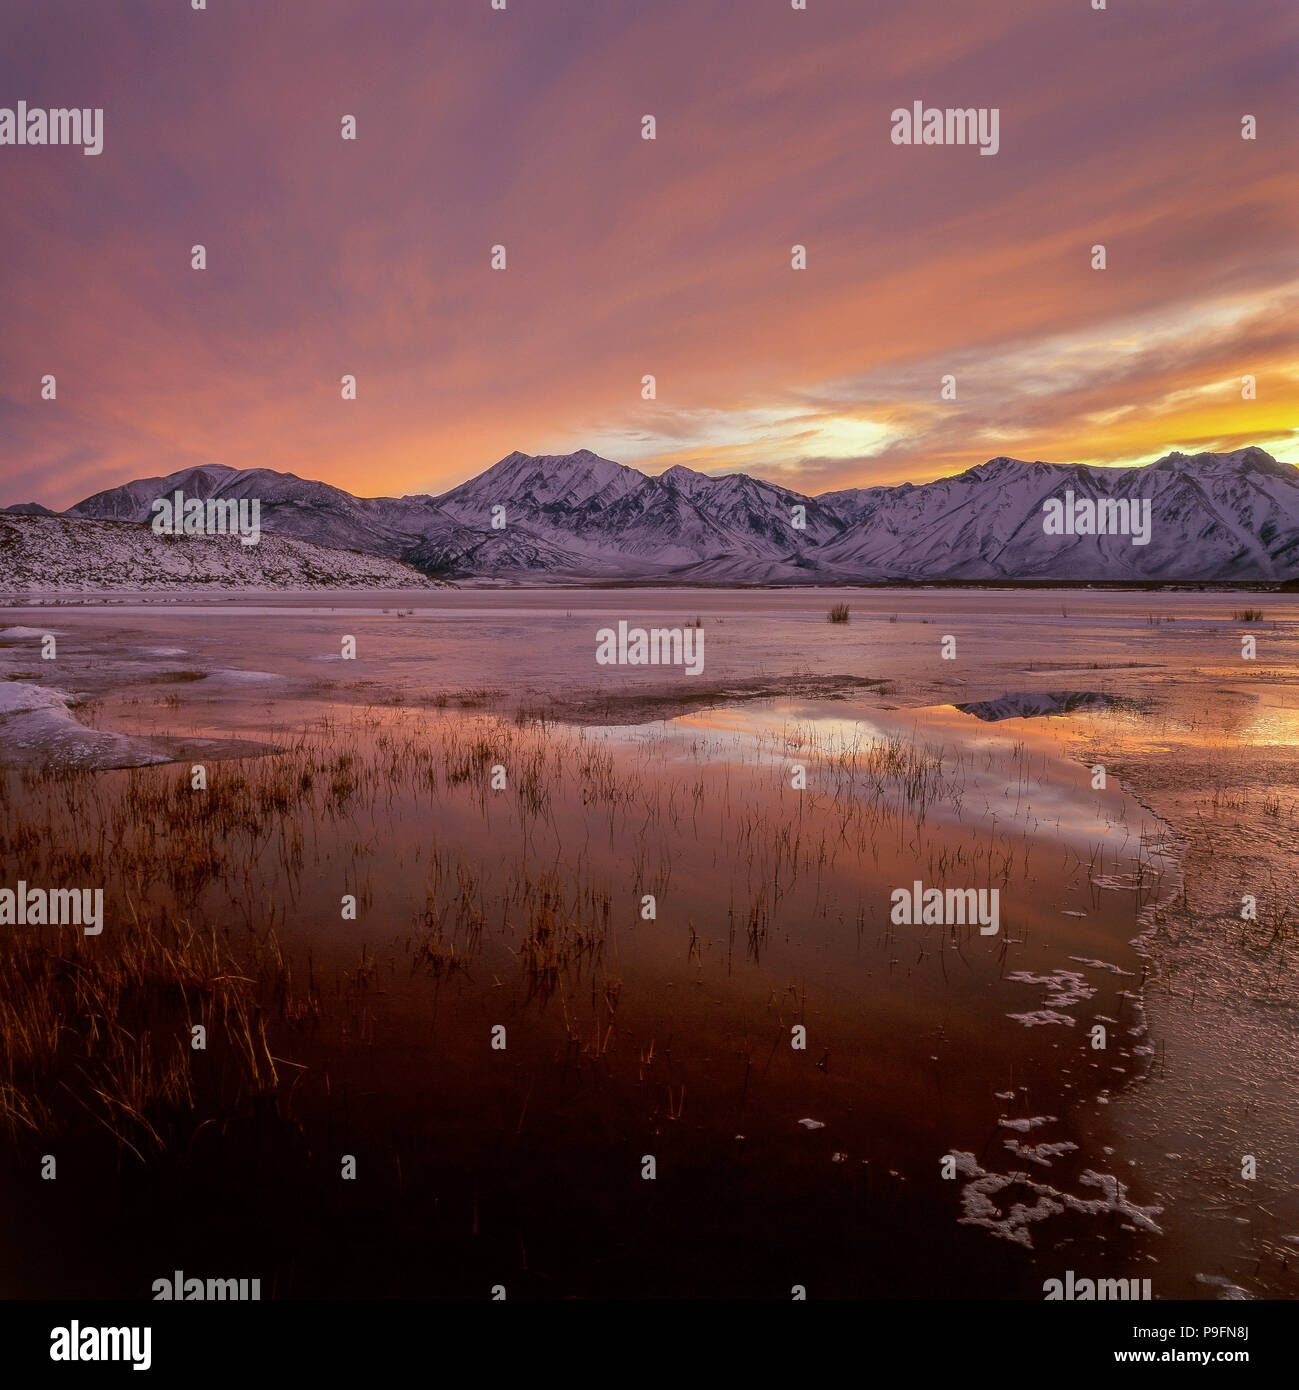 Sunset, Crowley Lake, Mount Morgan, Red Mountain, Inyo National Forest, Eastern Sierra, California - Stock Image